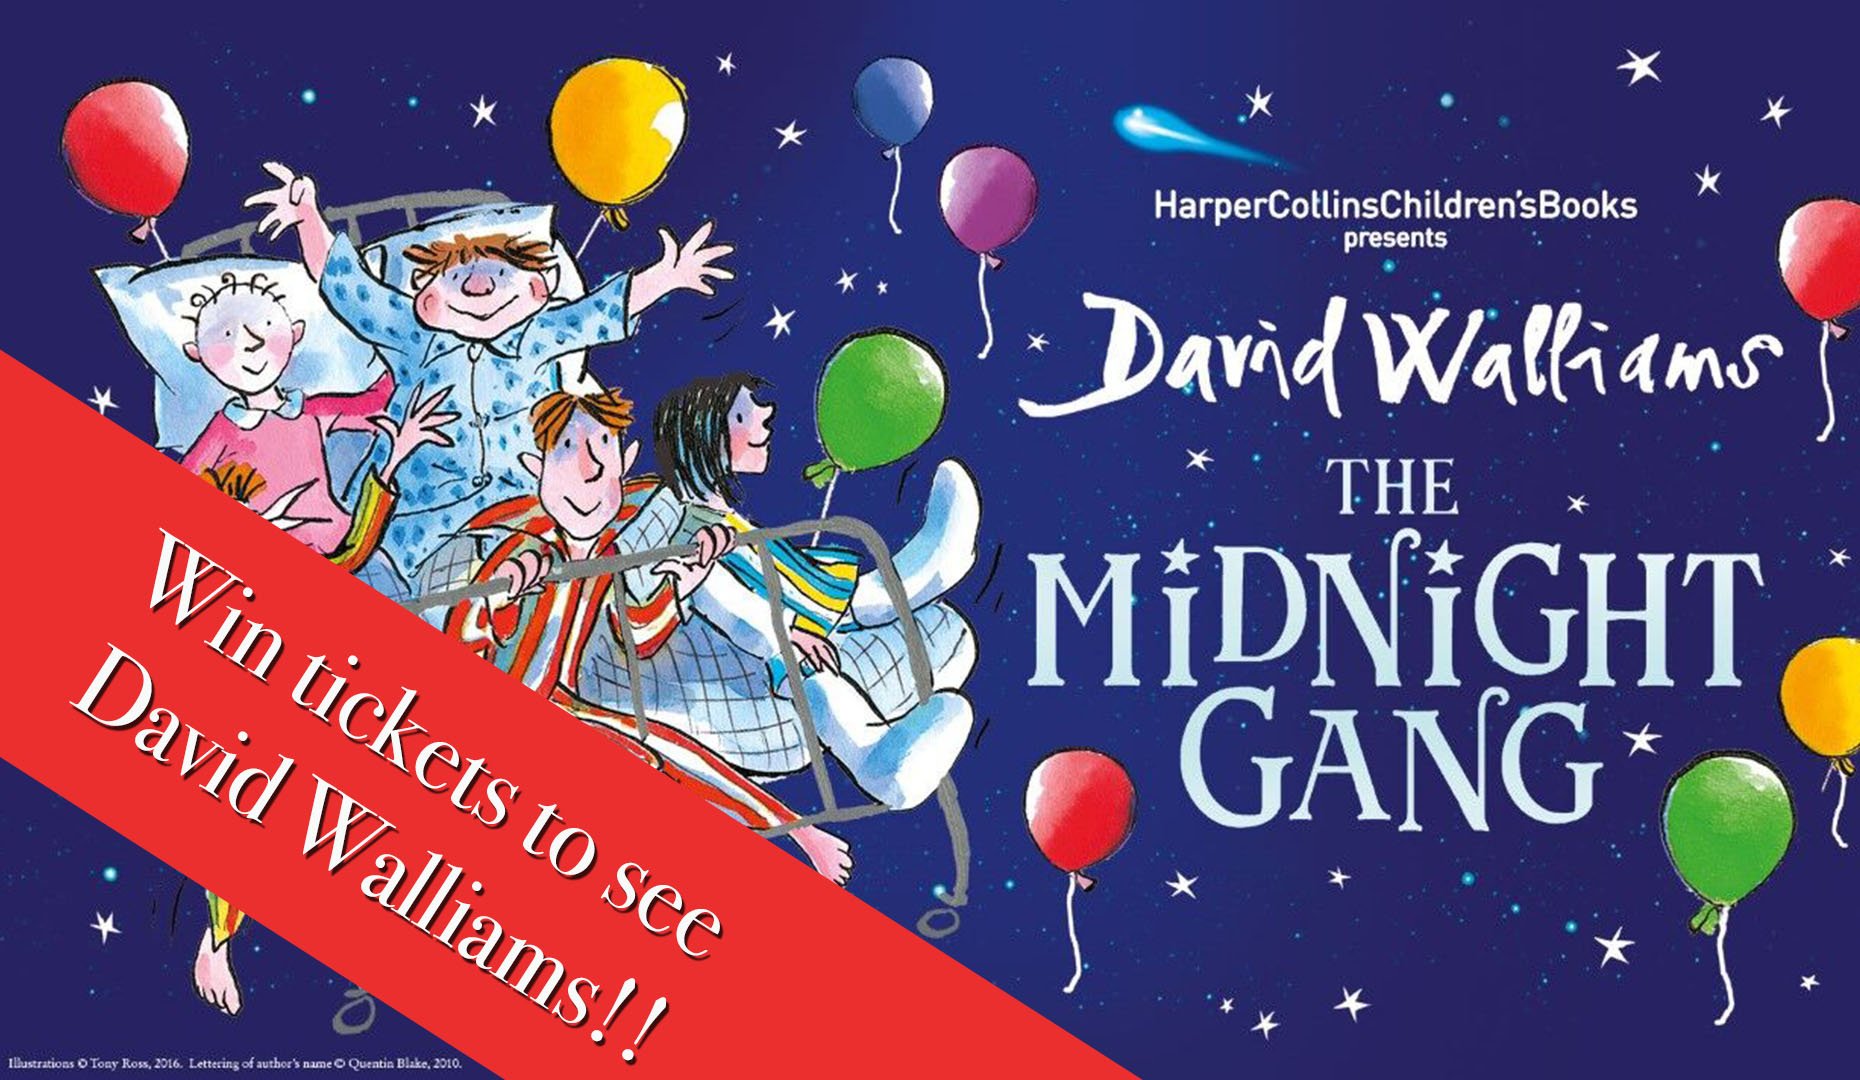 Win Tickest to David Walliams The Midnight Gang Event